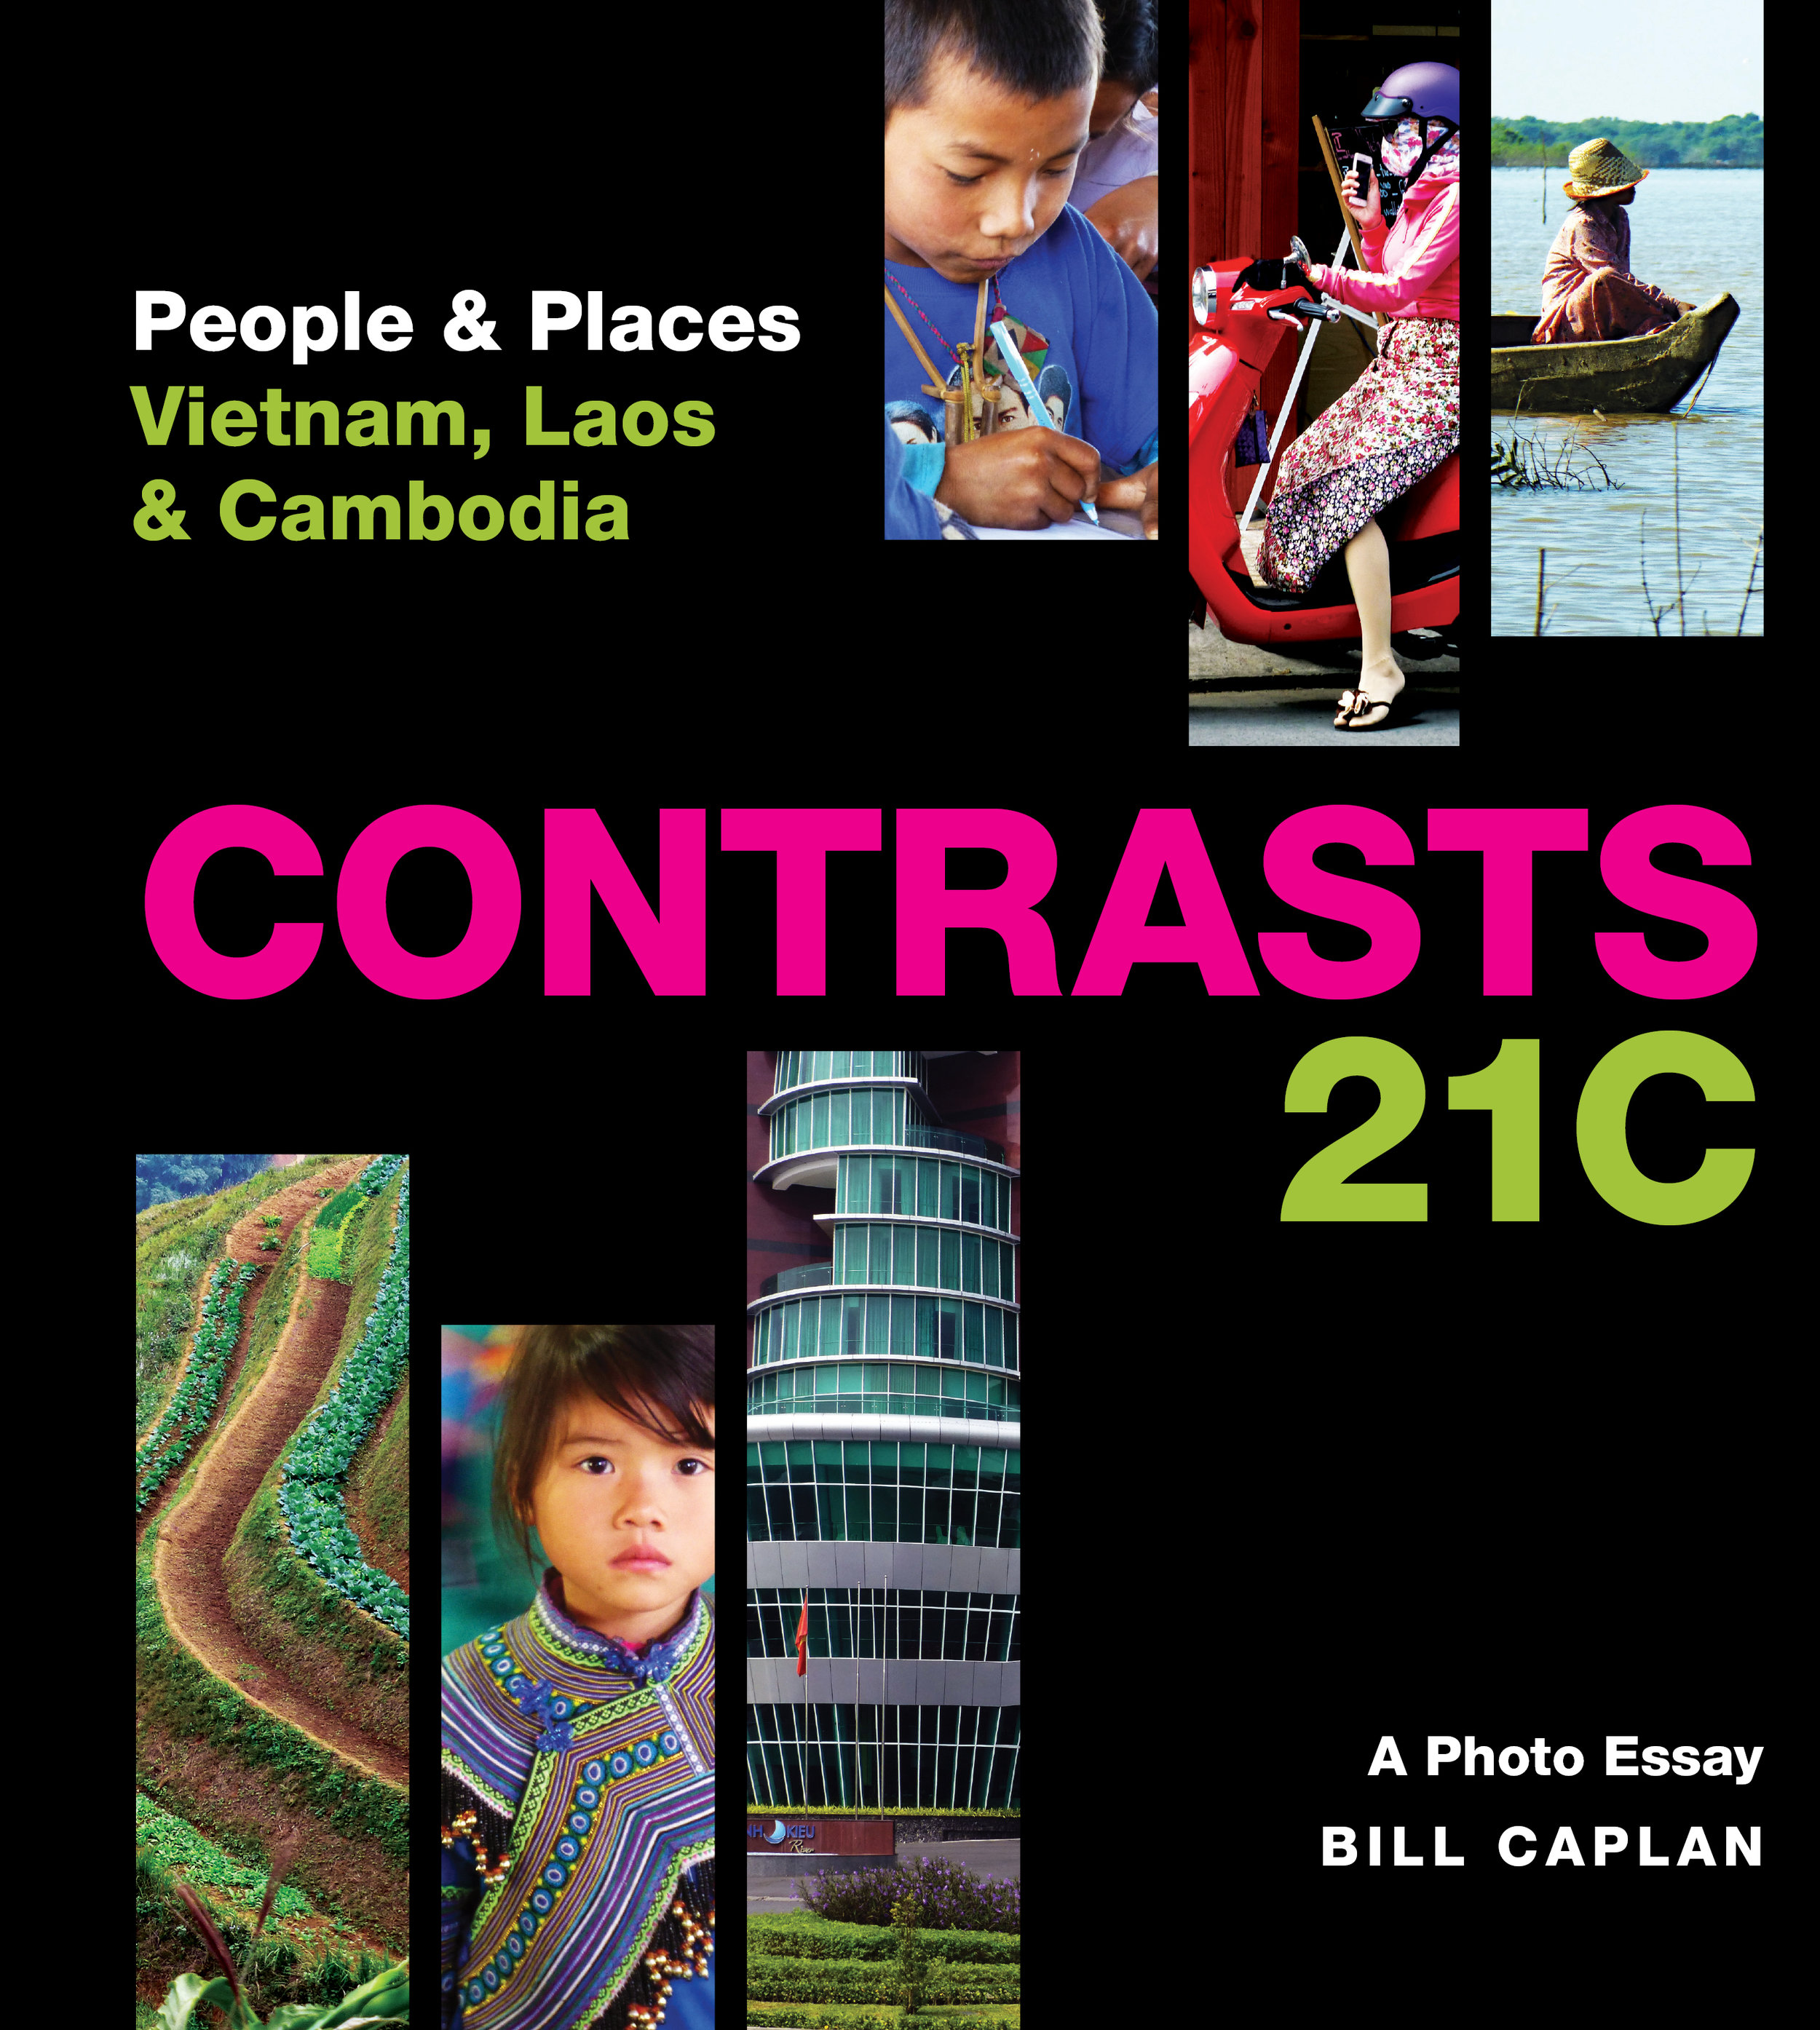 Contrasts21c_Cover_Photo_HiRes.jpg